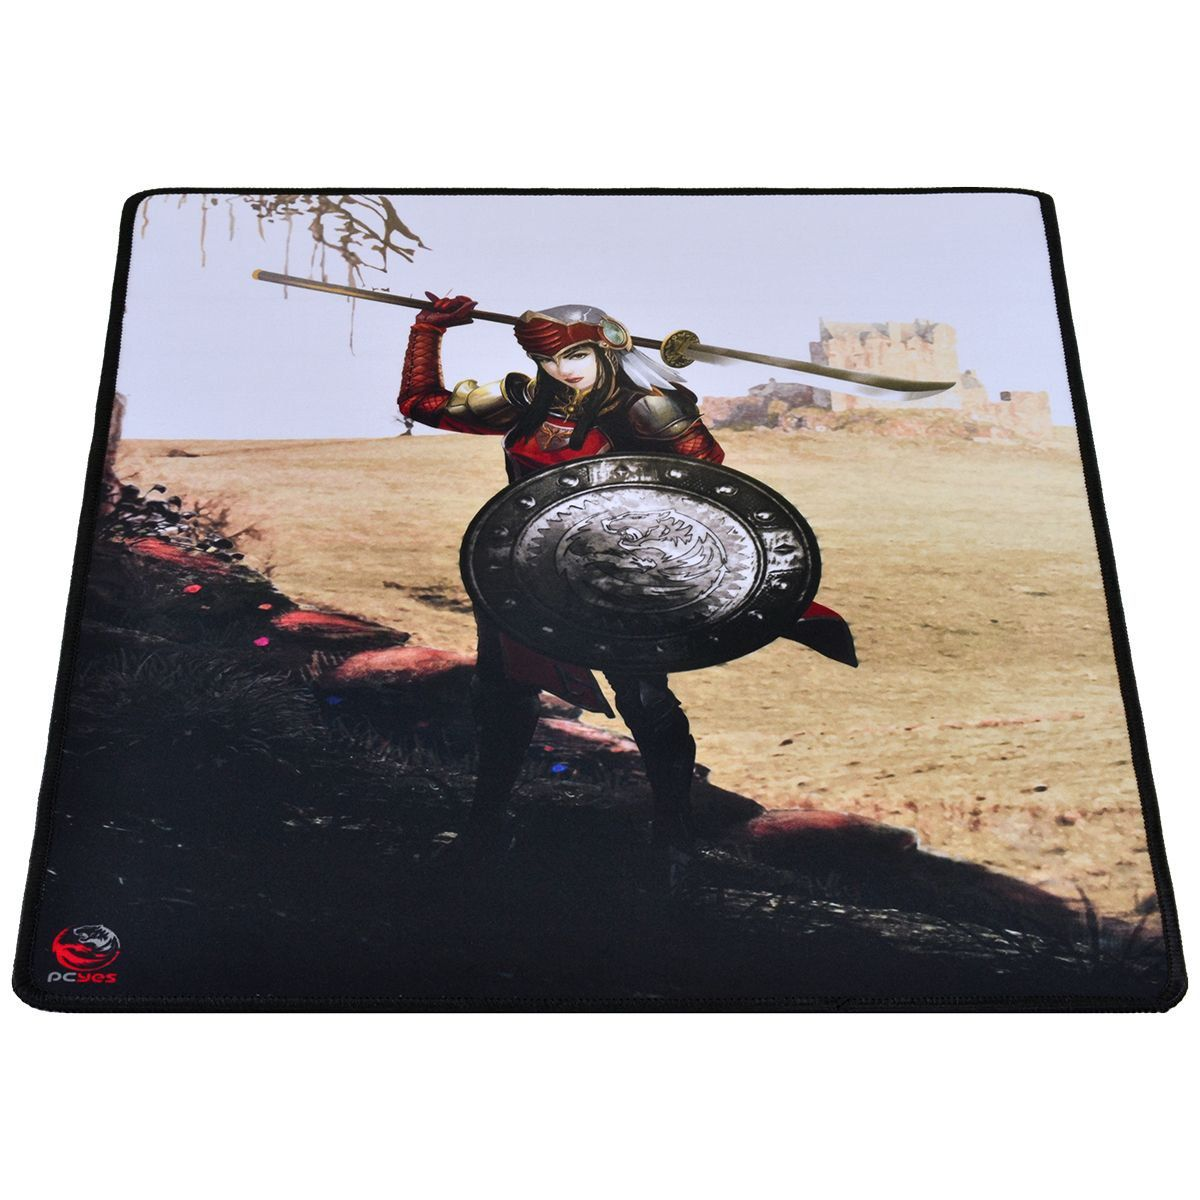 Mouse Pad RPG VALKYRIE 400X500mm RV40X50 28981 - Pcyes